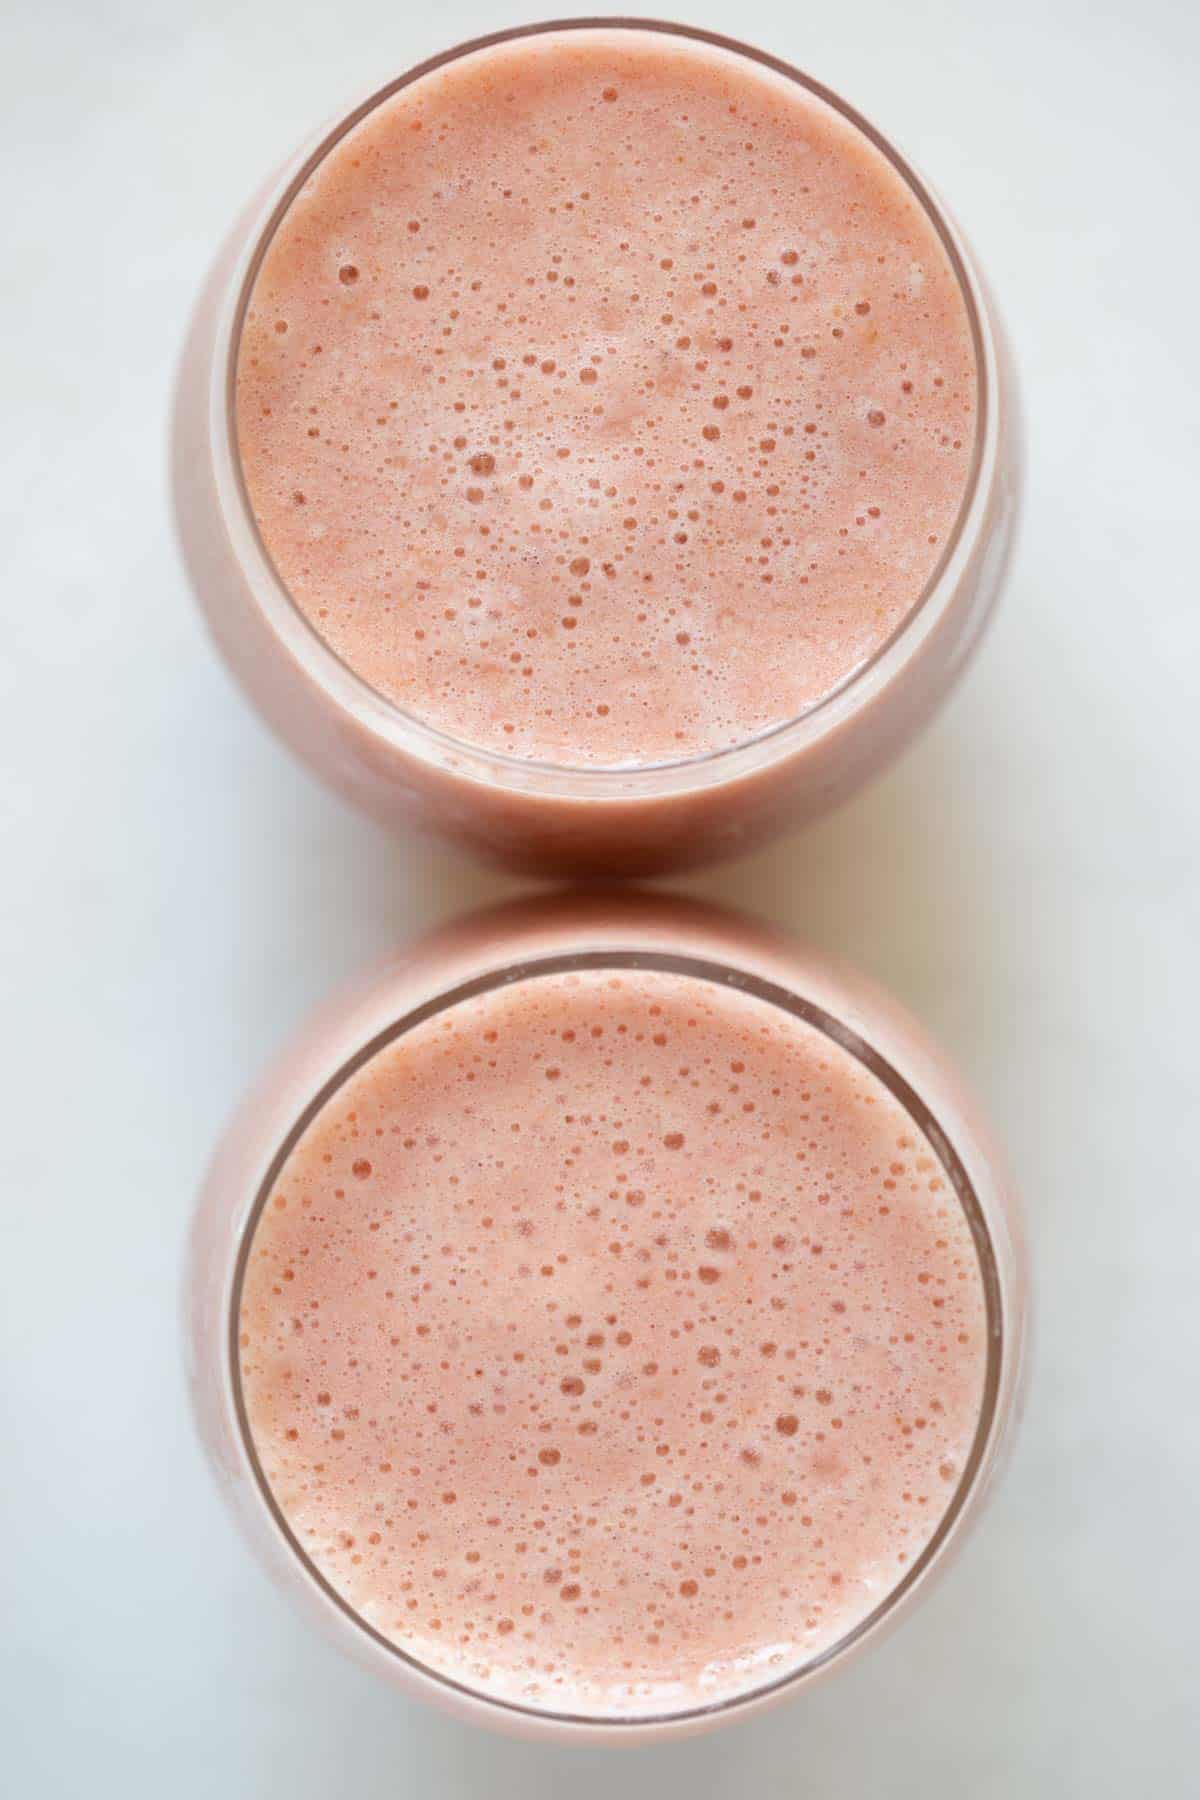 strawberry banana pineapple smoothie in two glass cups